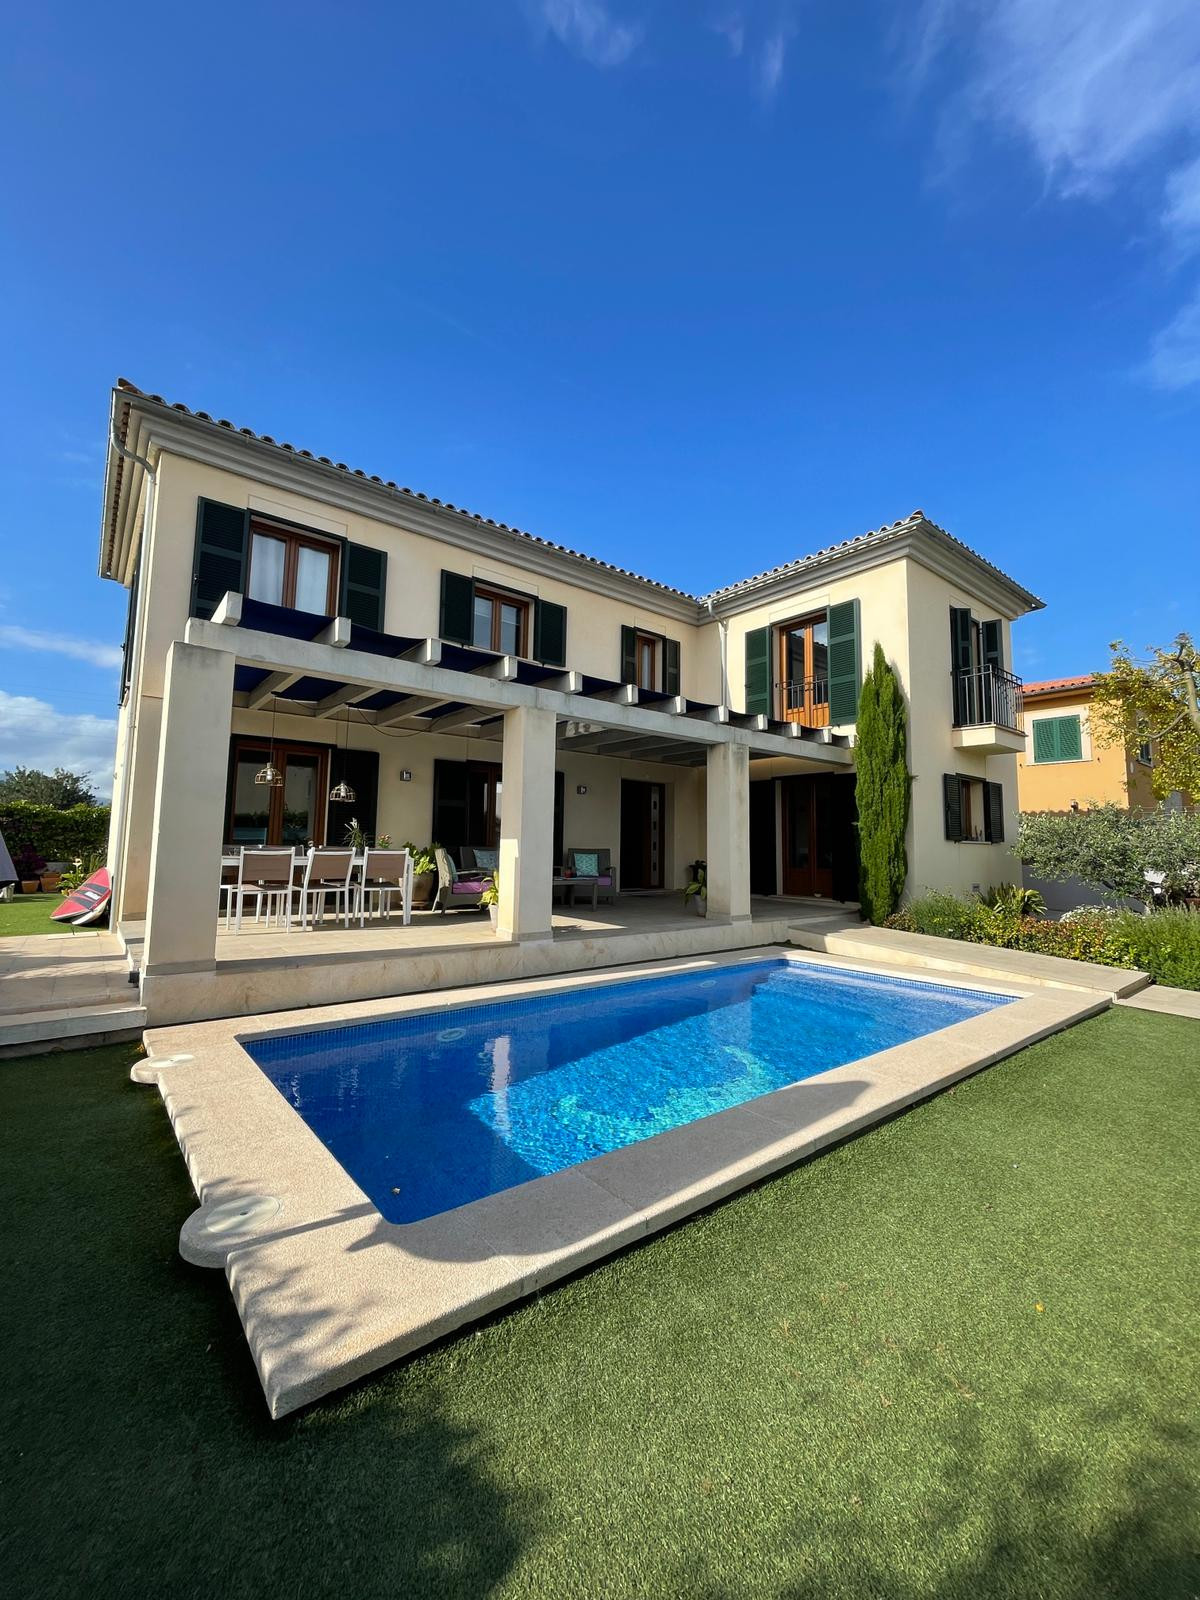 Luxurious detached house for sale in Son Macia (Marratxi) with magnificent views of the Tramuntana i,Spain